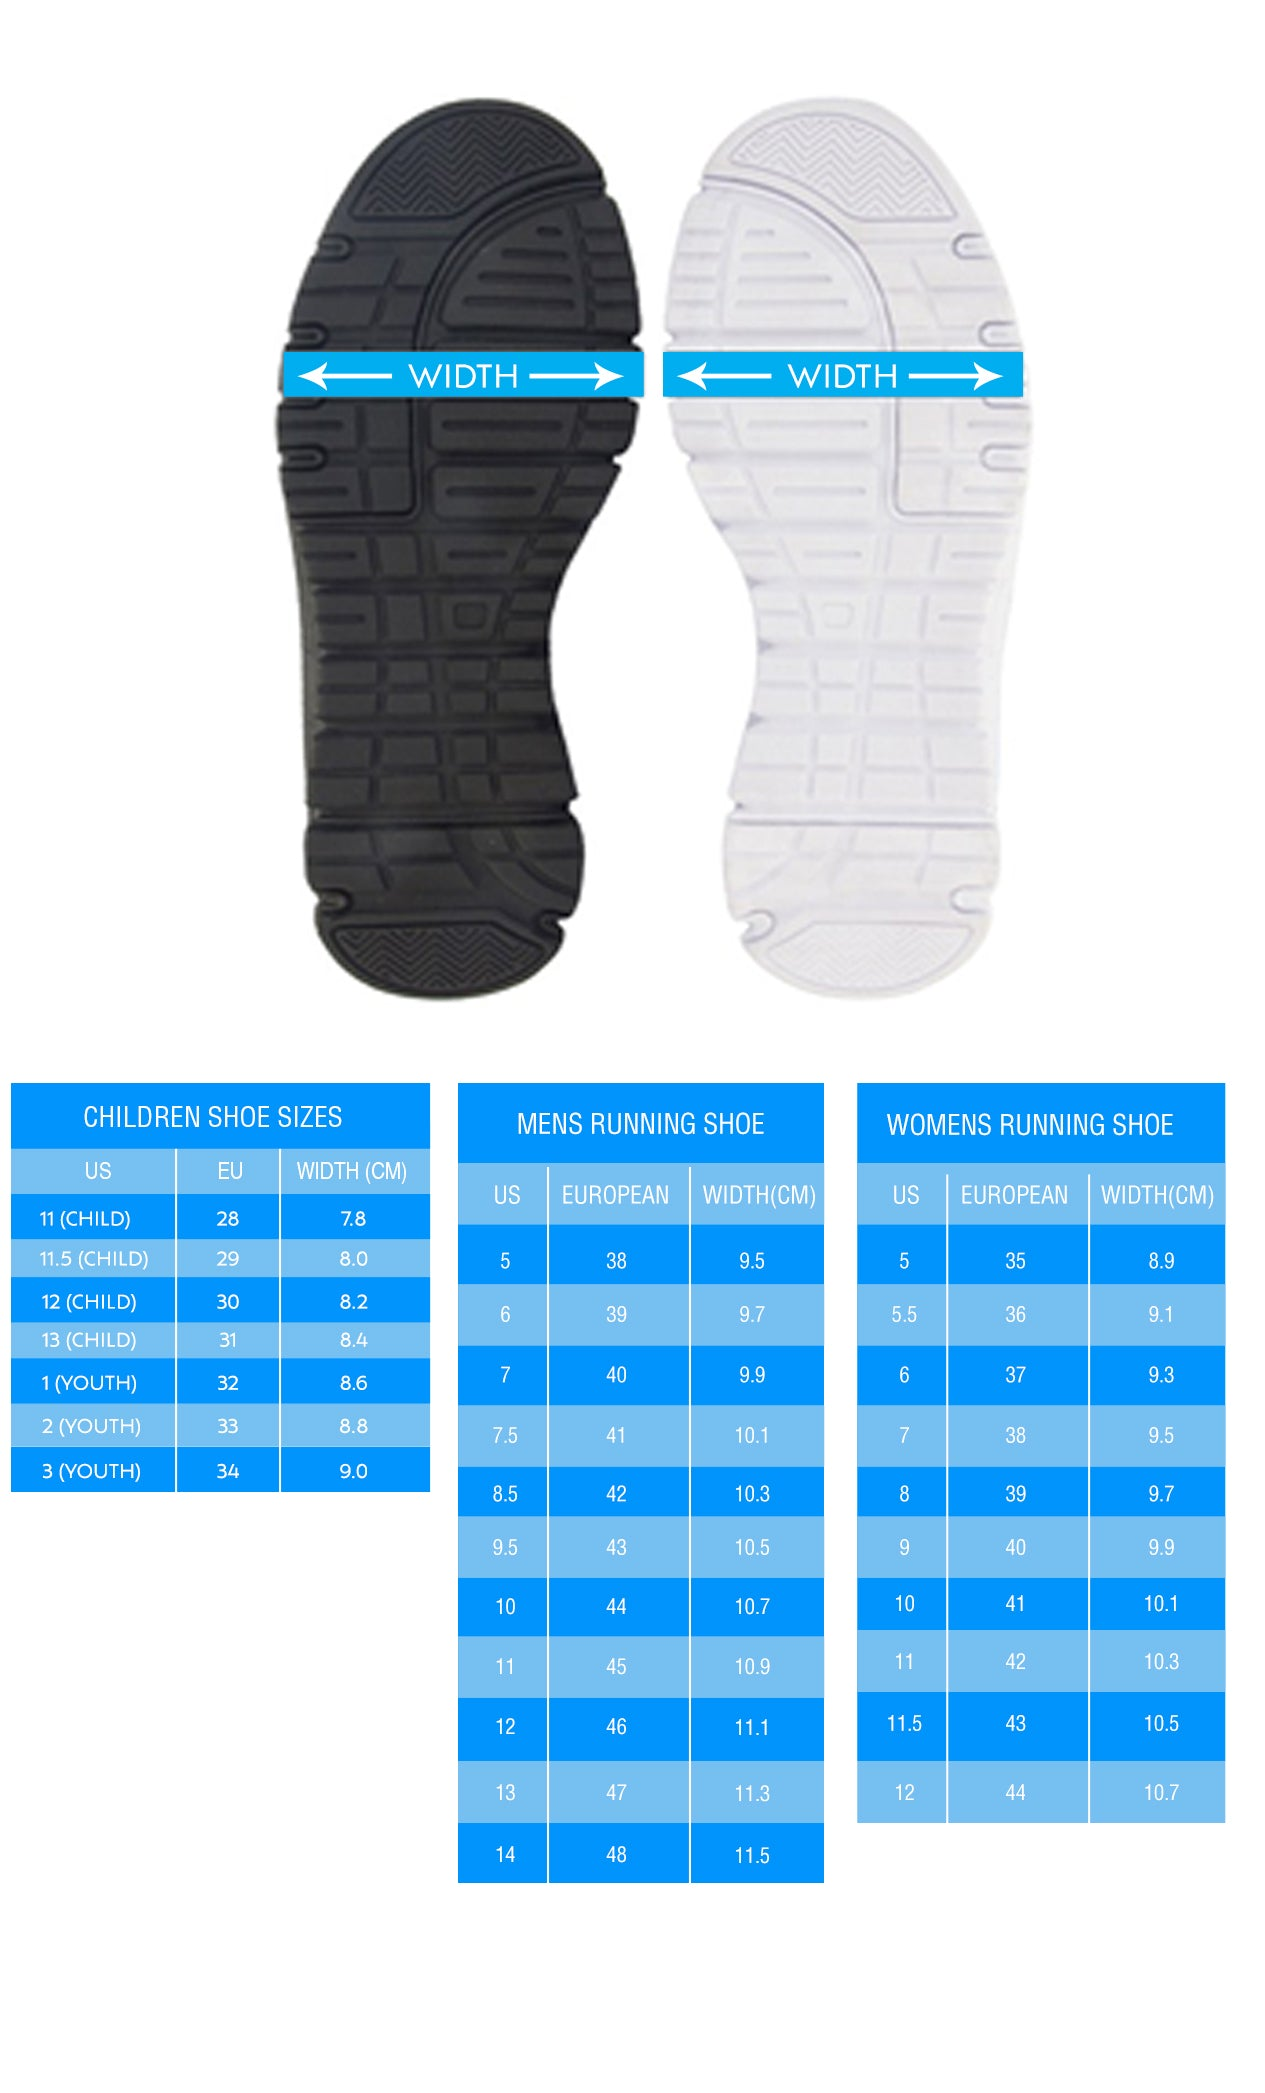 sneakers size guide